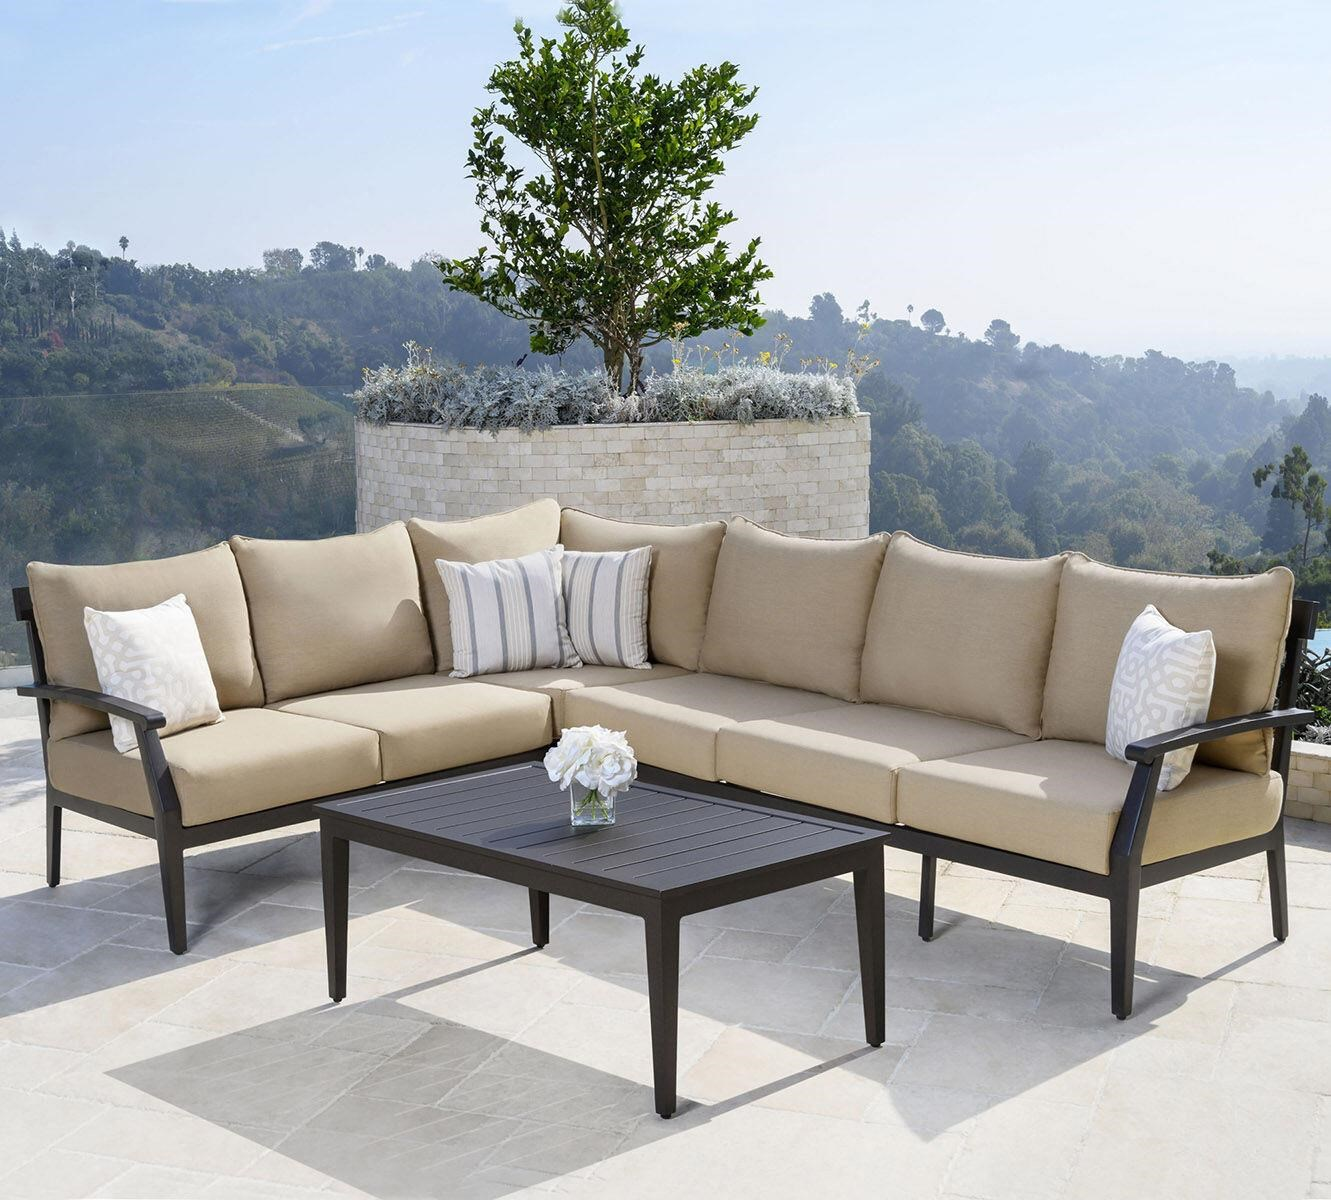 Marielle Marielle Outdoor Sectional Set by Abbyson at Morris Home